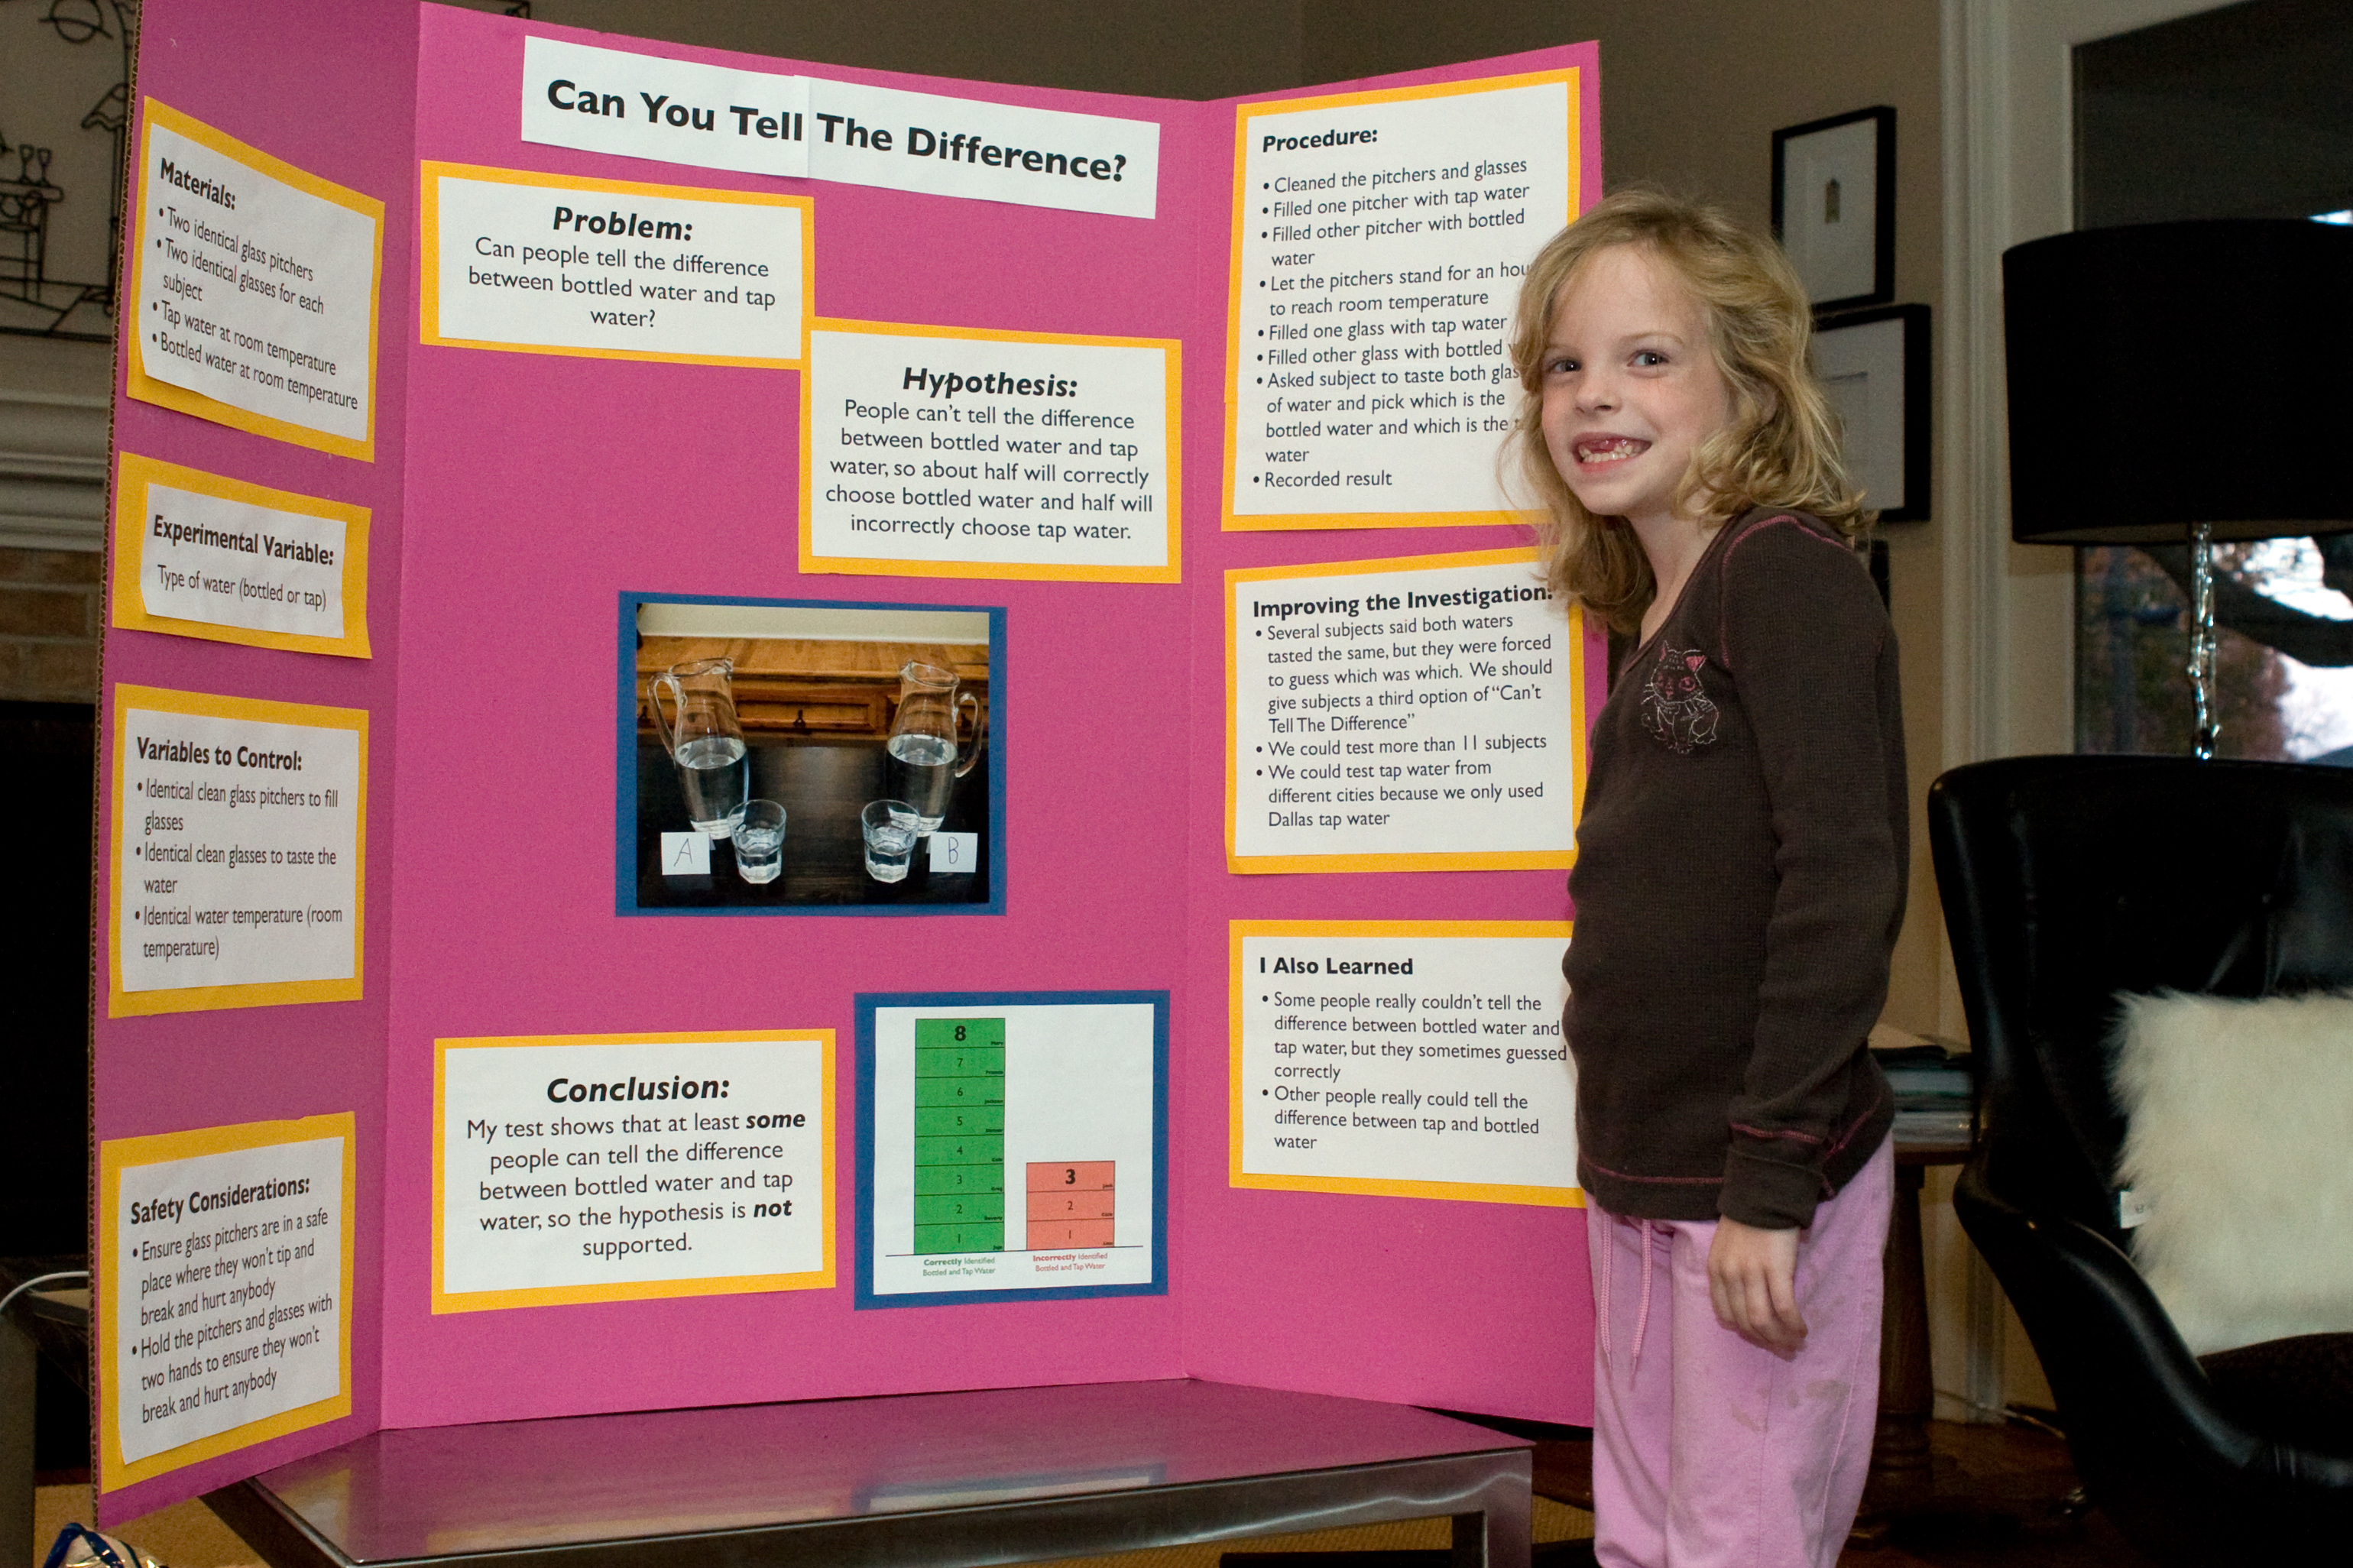 water science fair projects Here's a list of over 30 science fair ideas to get you started then download science experiments, and watch experiment videos to inspire your project.